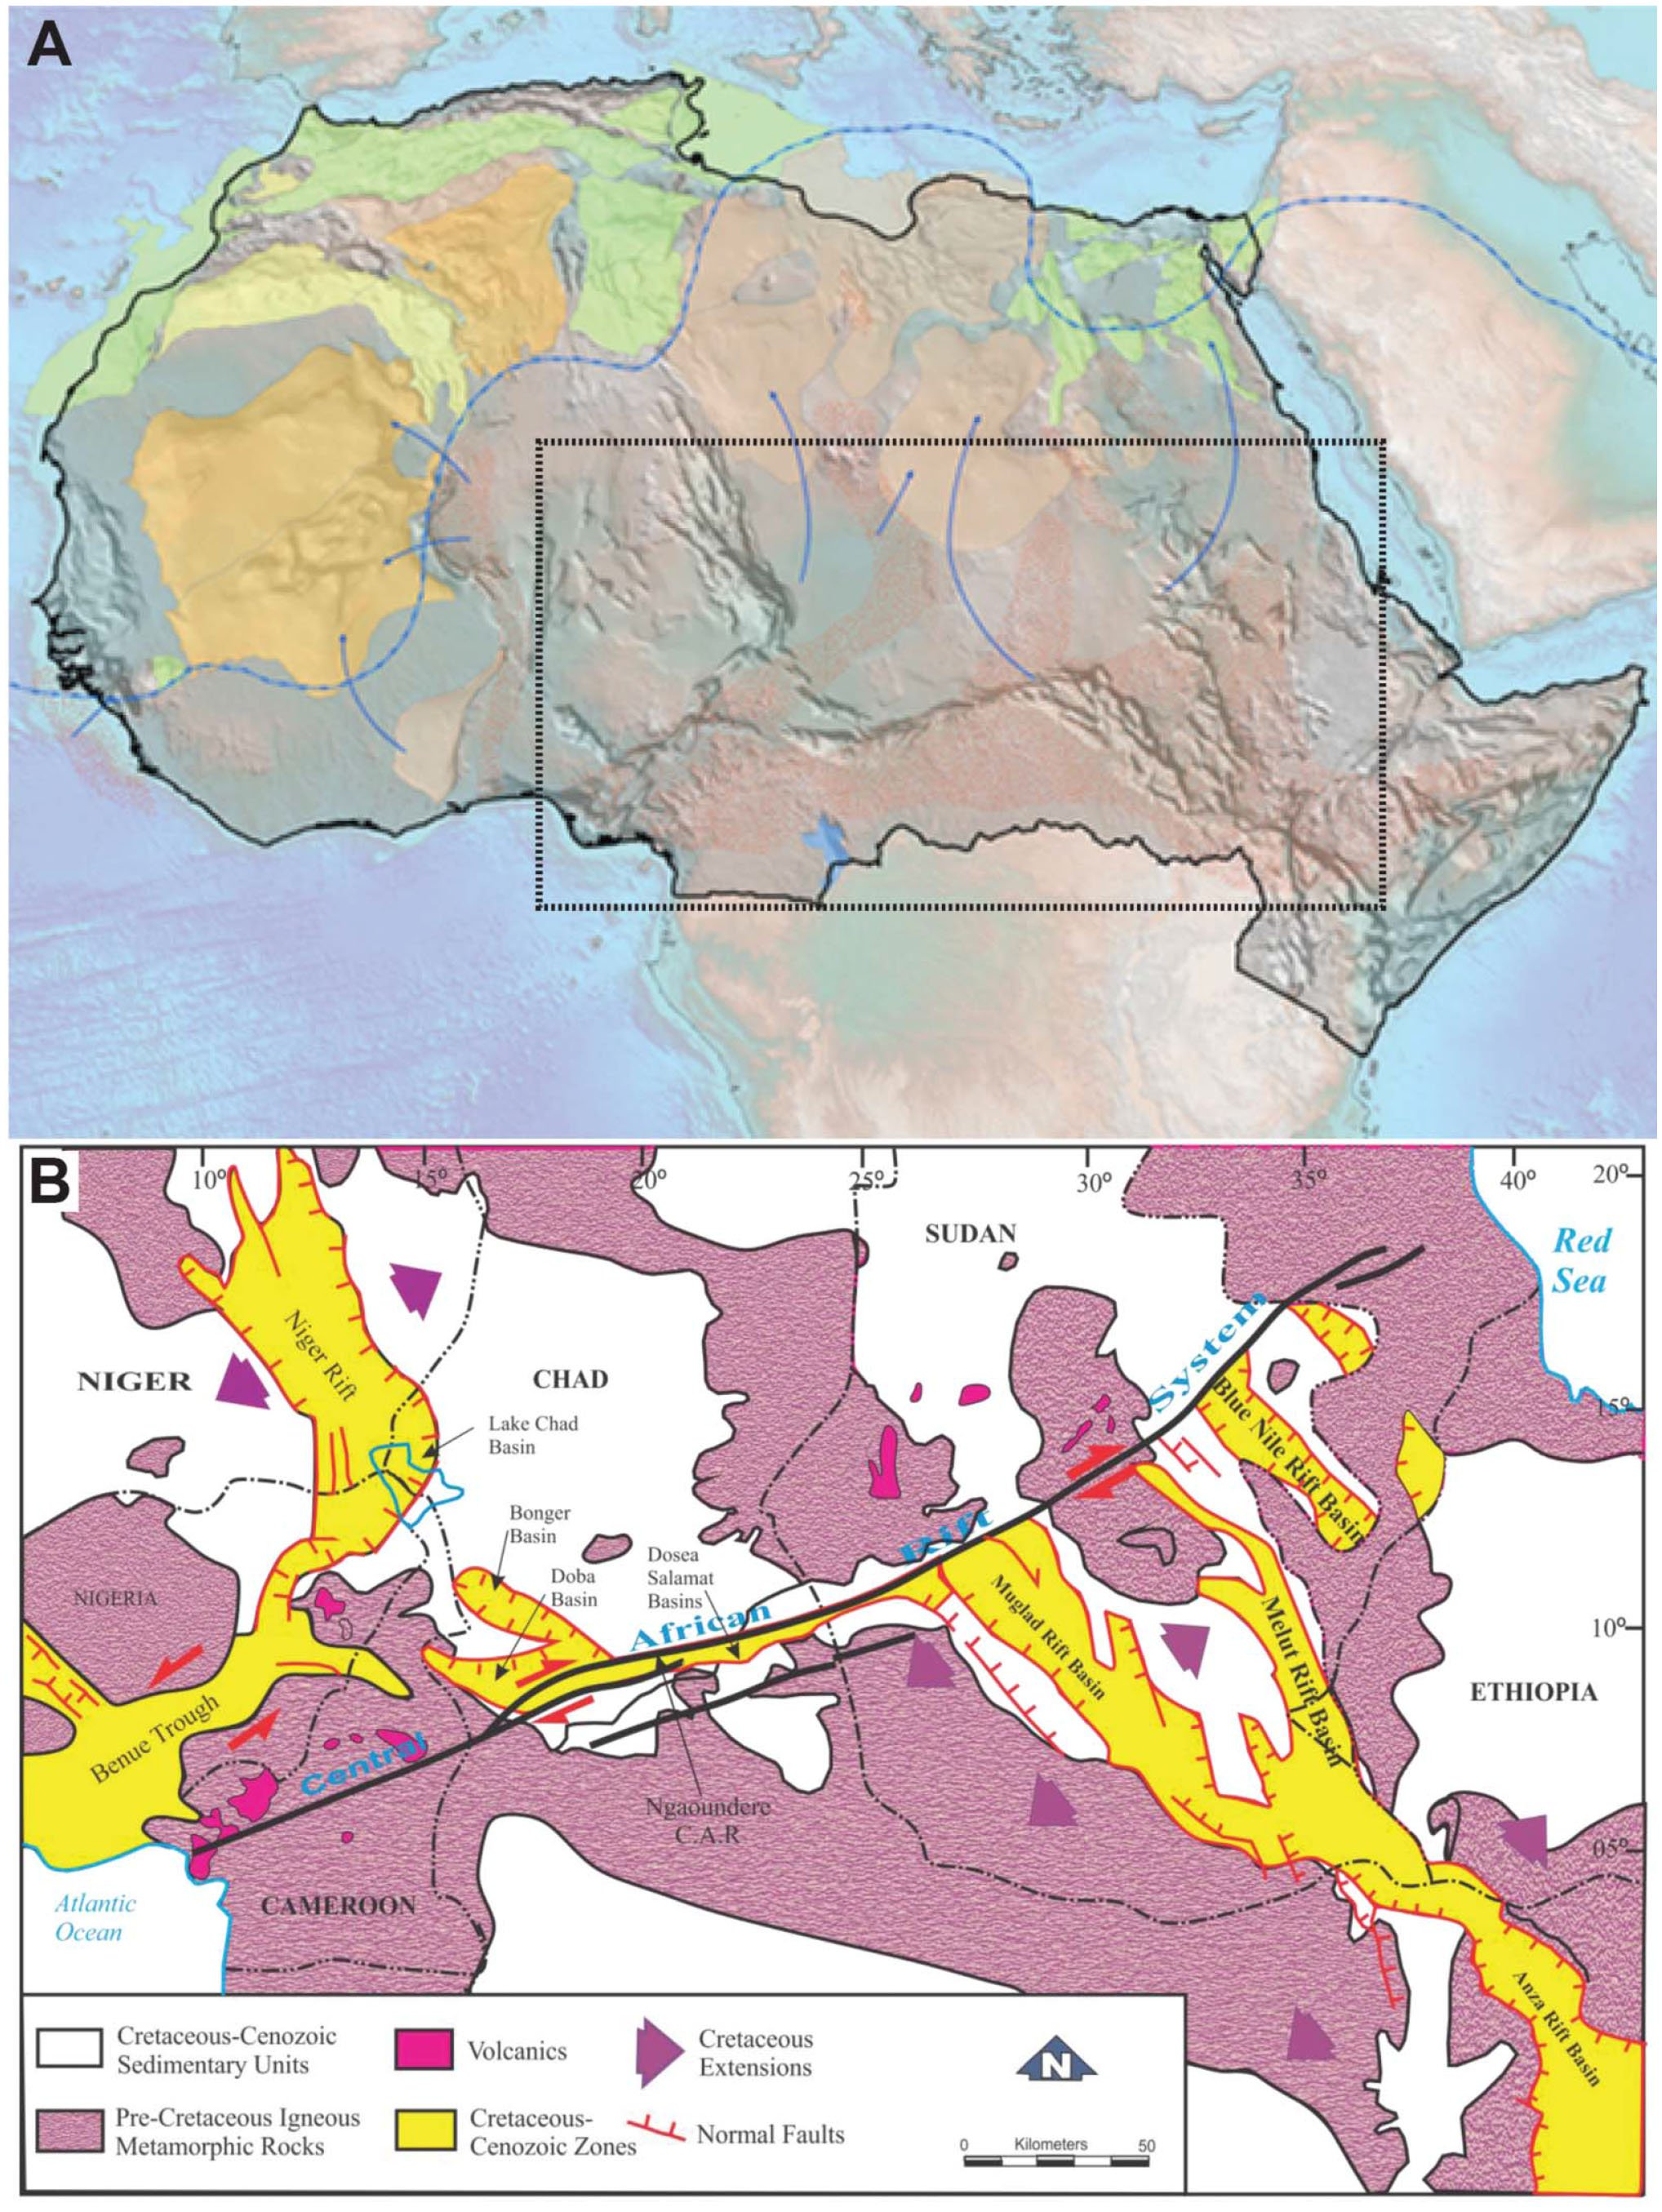 Late Cretaceous Spore-Pollen Zonation of the Central African Rift